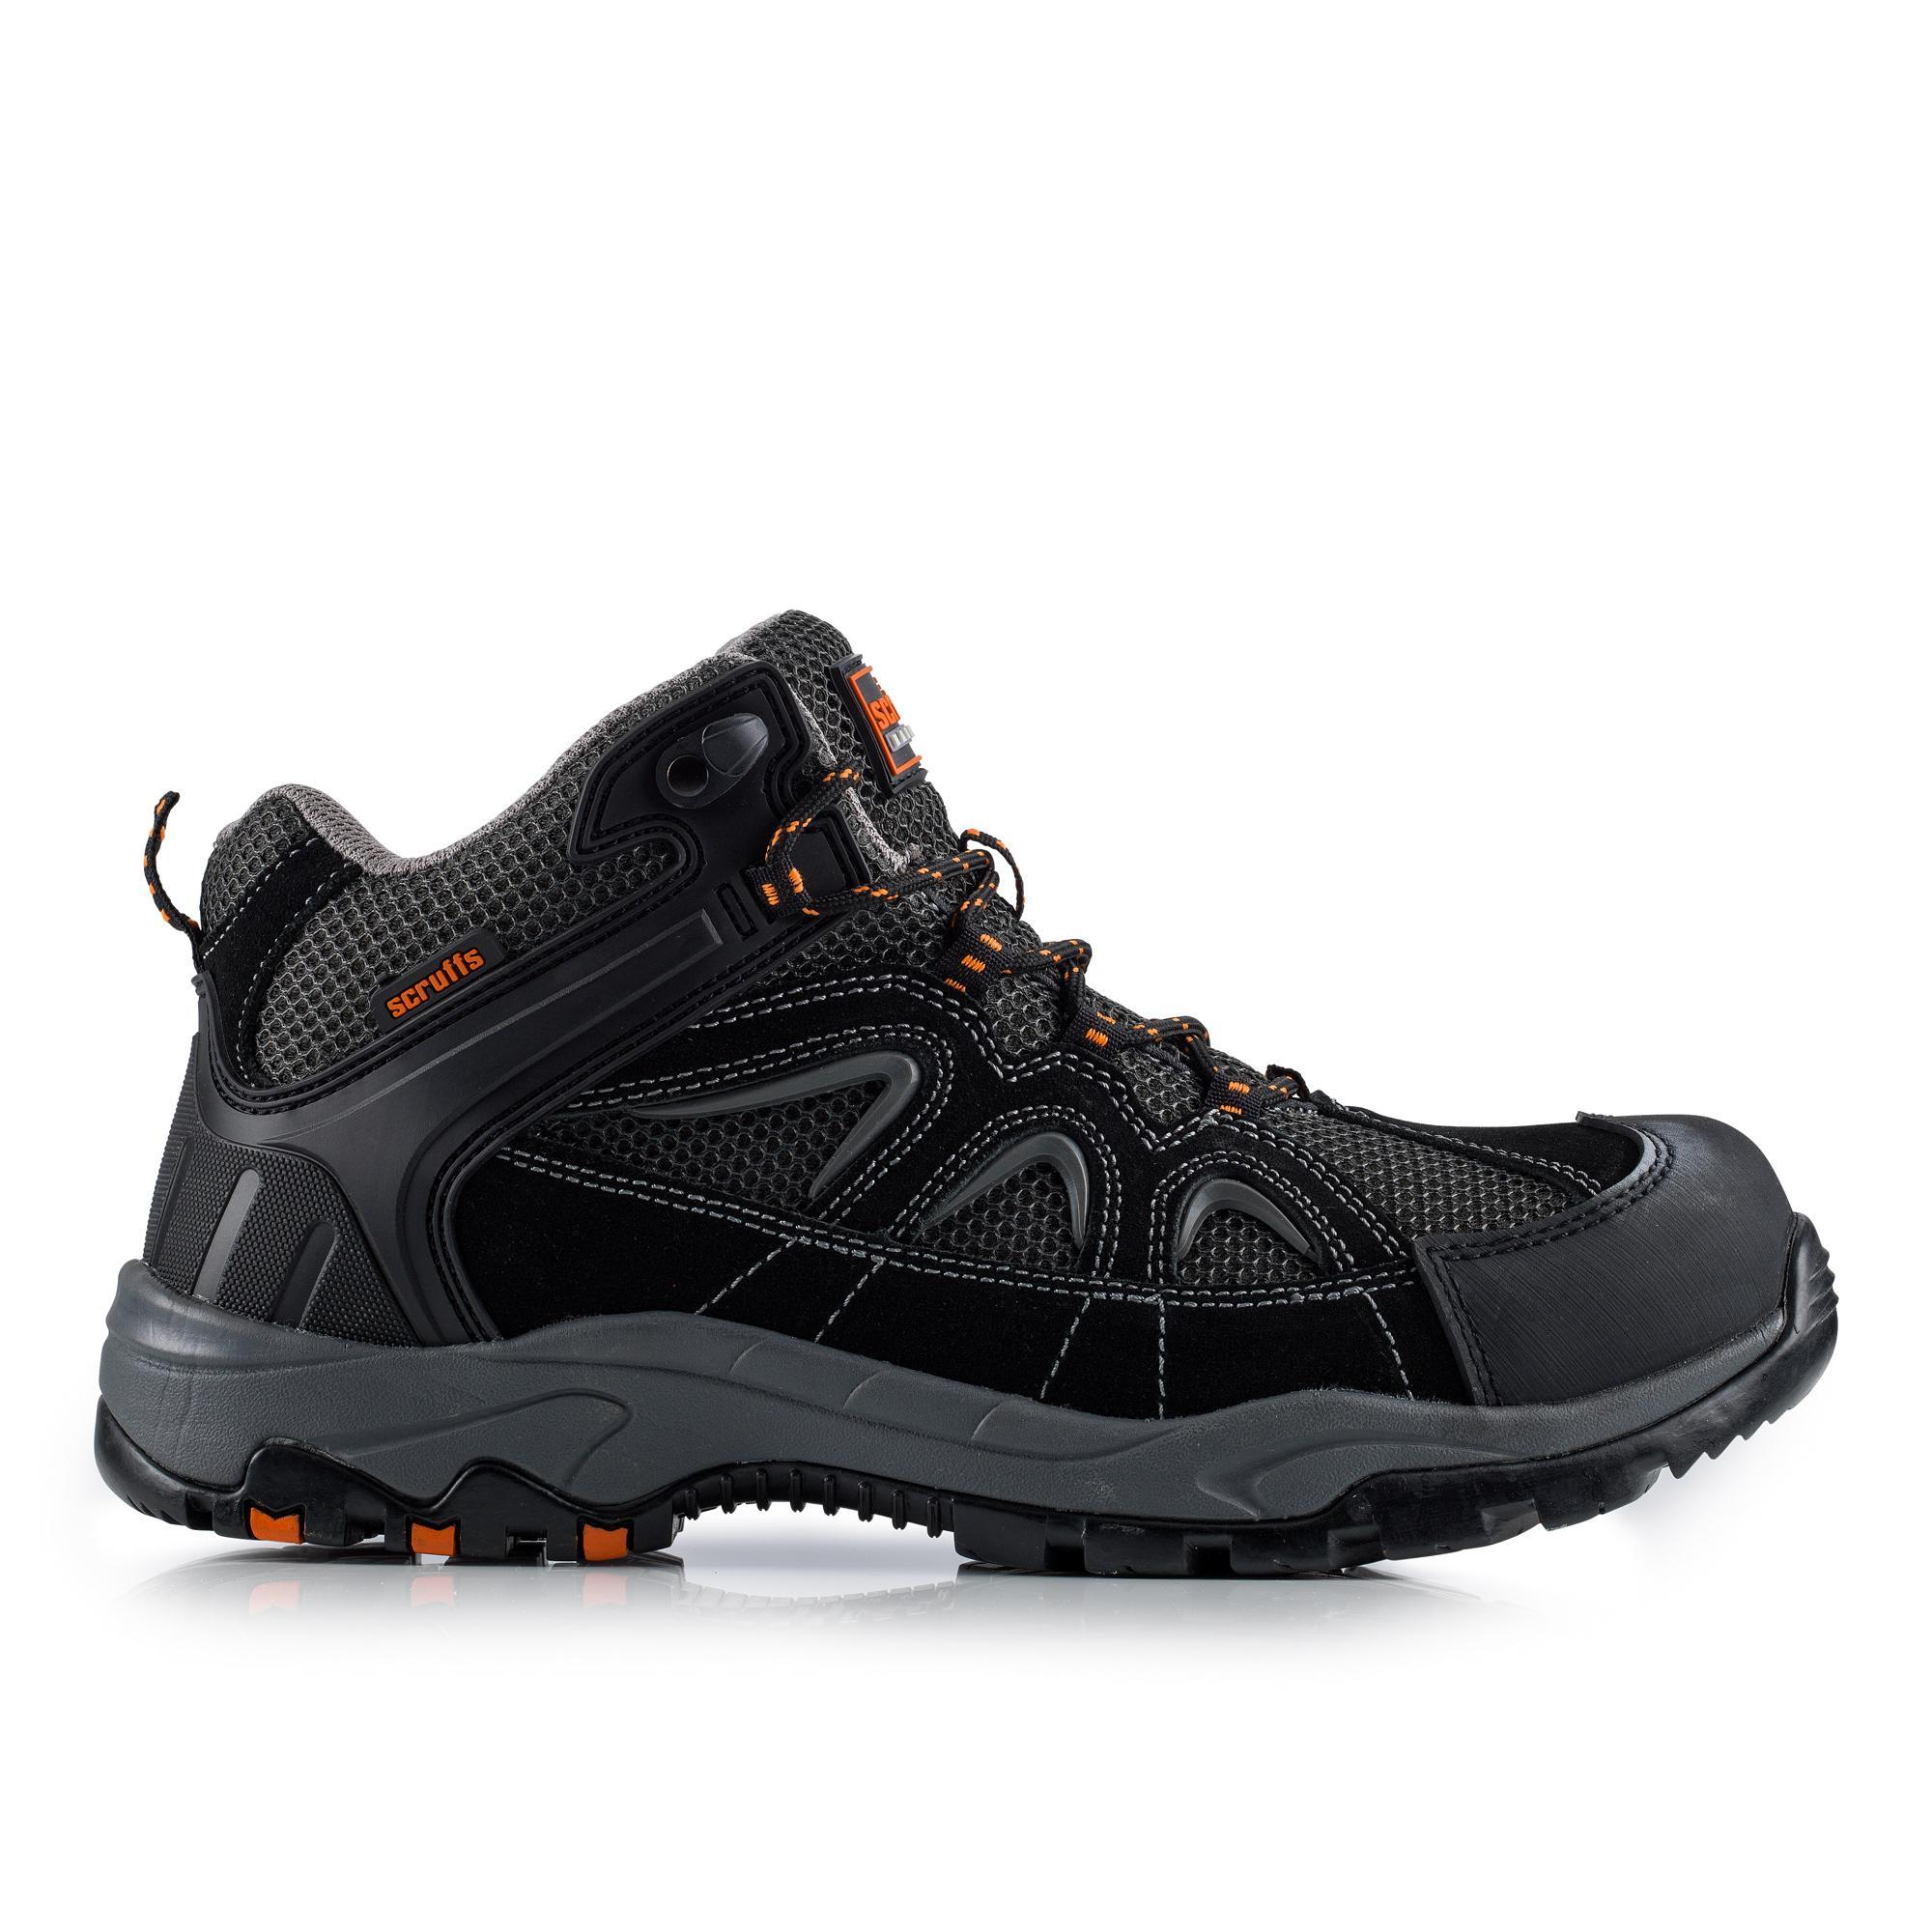 SCRUFFS SOAR HIKER Safety BOOT w/ • Padded tongue and ankle collar